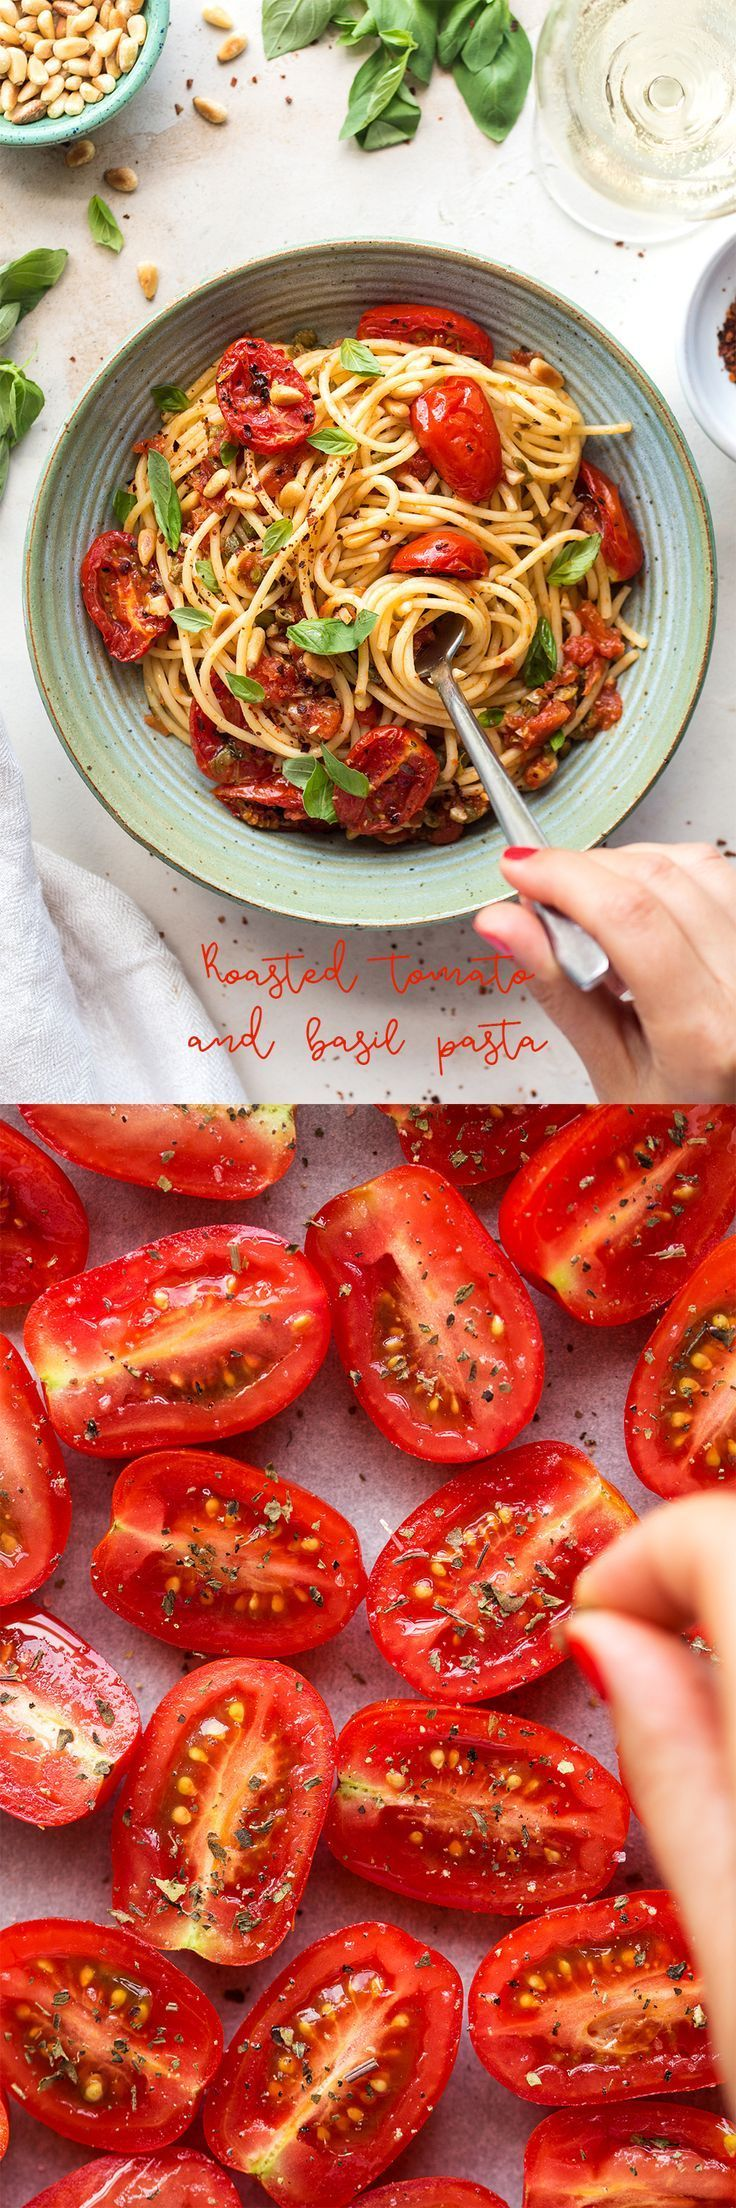 Roasted tomato and basil pasta  #vegan #pasta #cherrytomatoes #roastedtomatoes #…